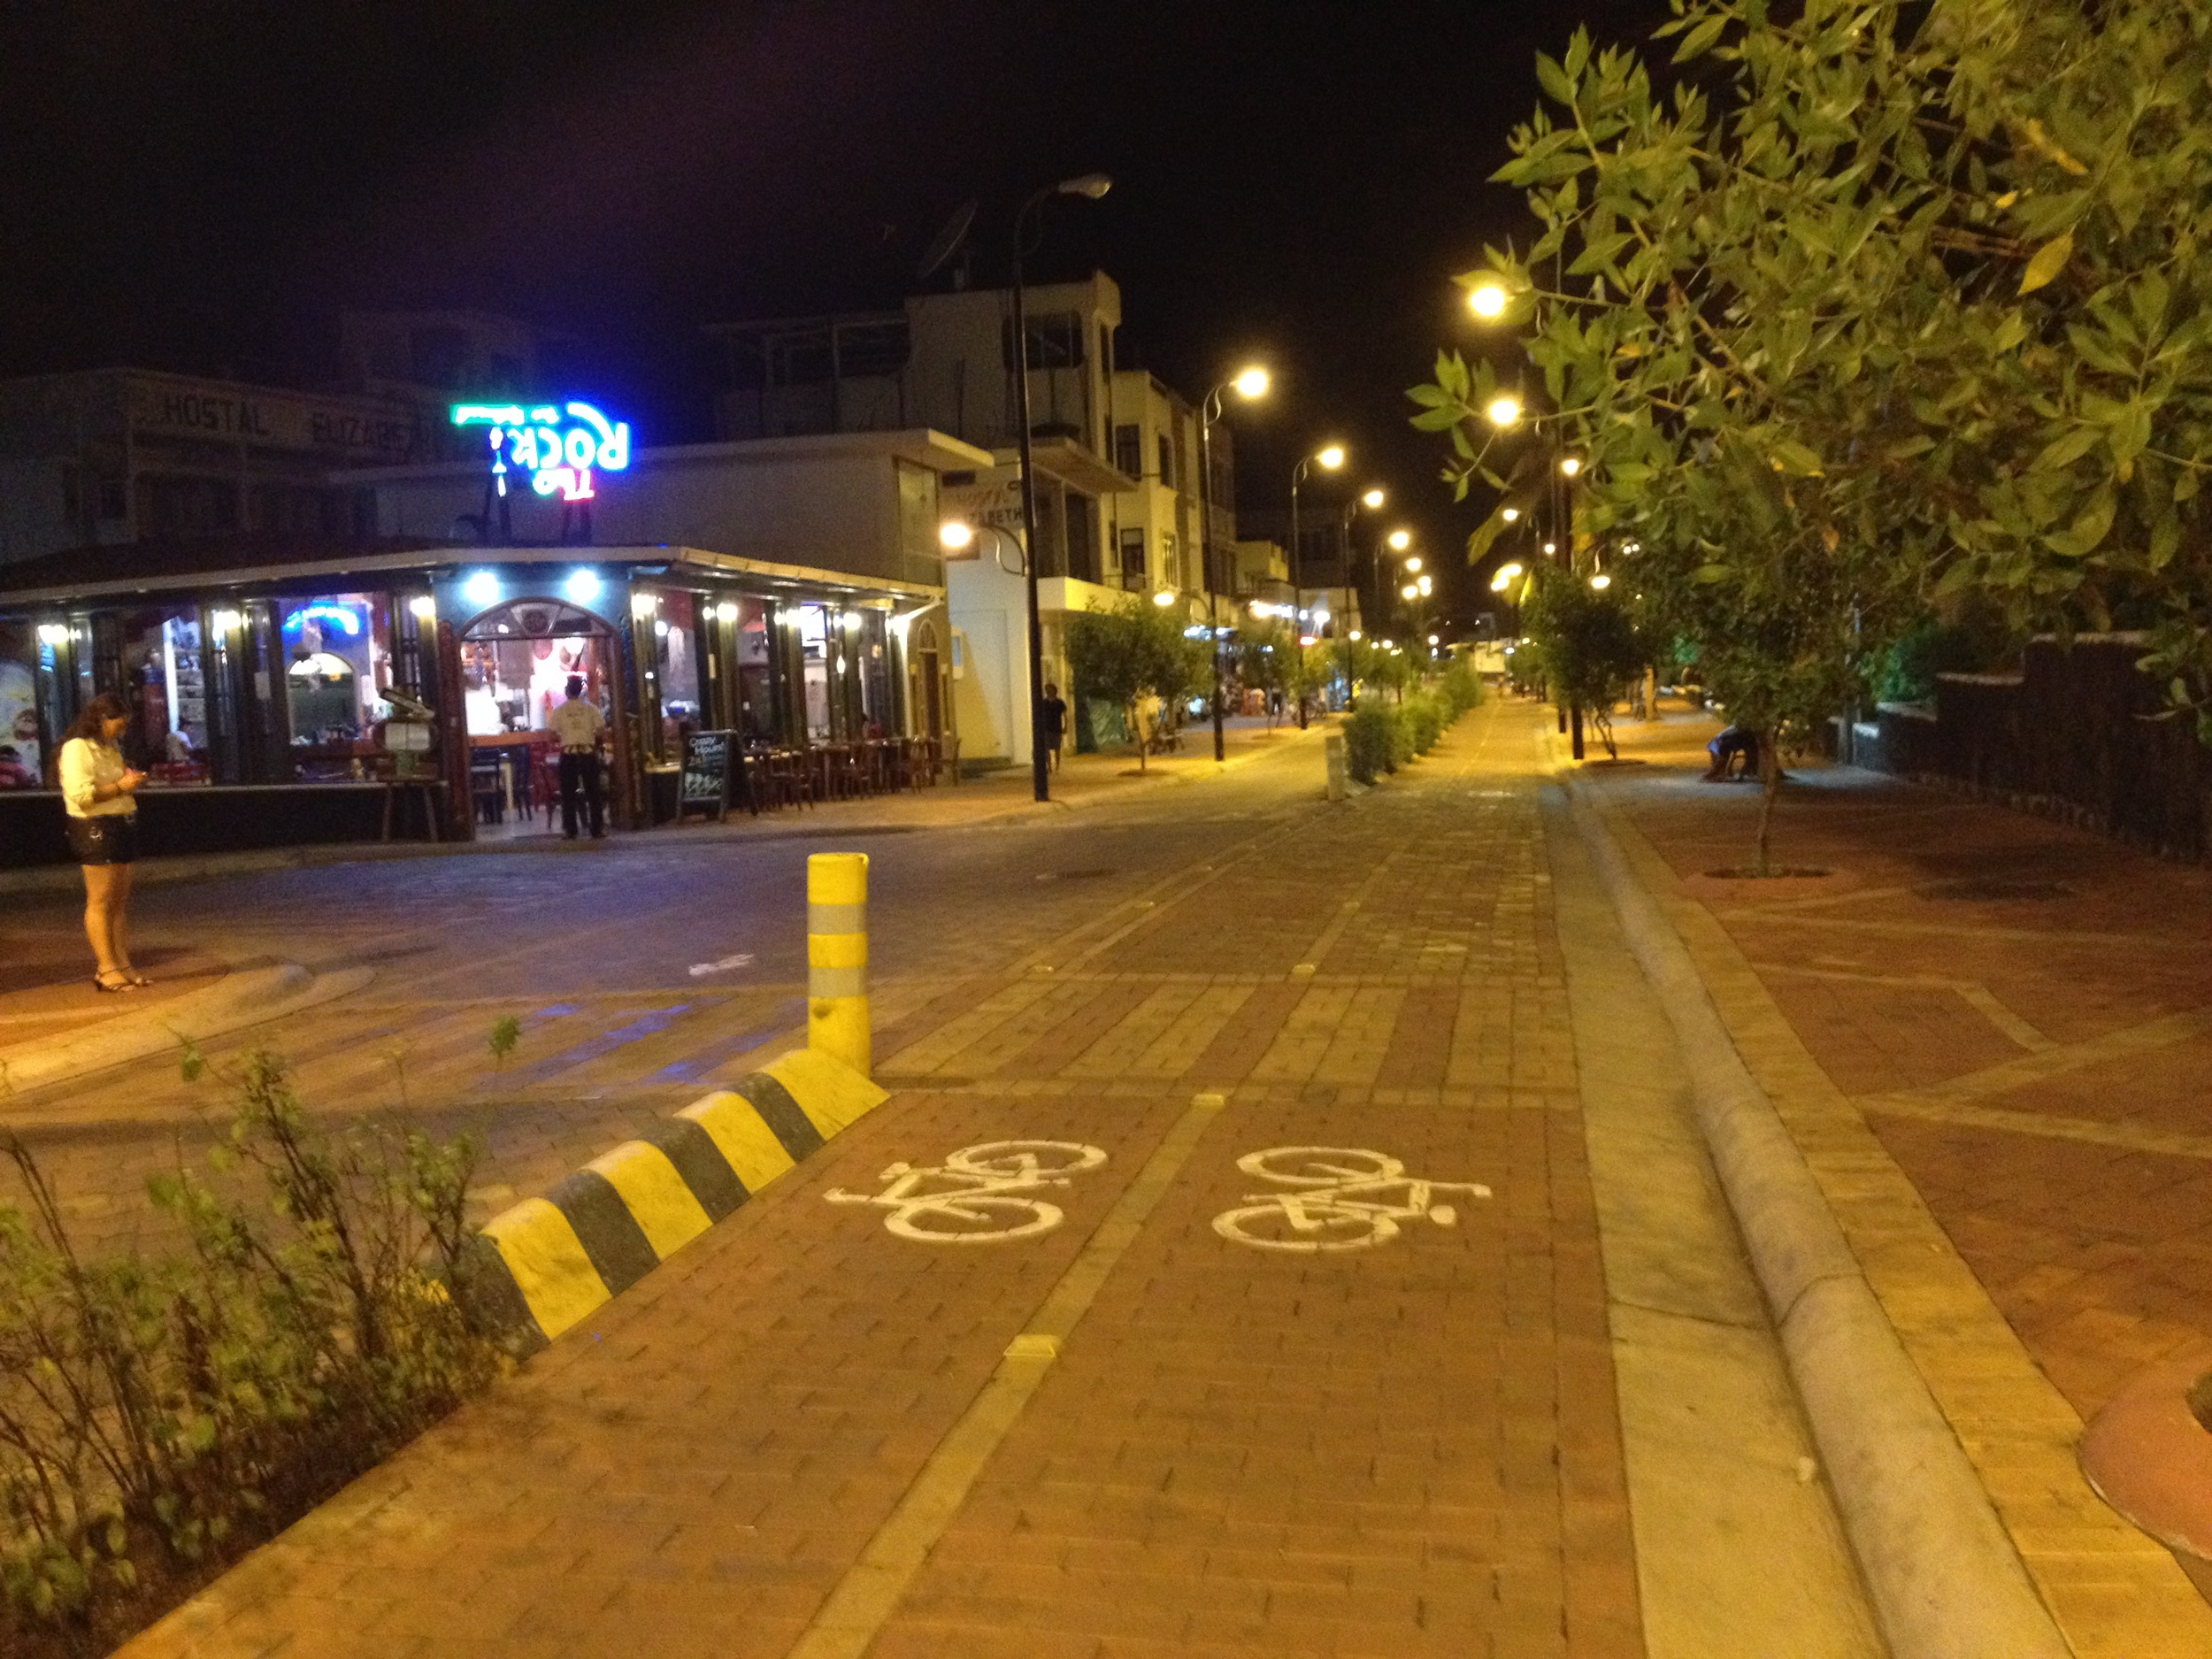 Physical environment prevents traffic fatalities by separating bike and automobile lanes, Puerto Ayora, Galapagos, Ecuador